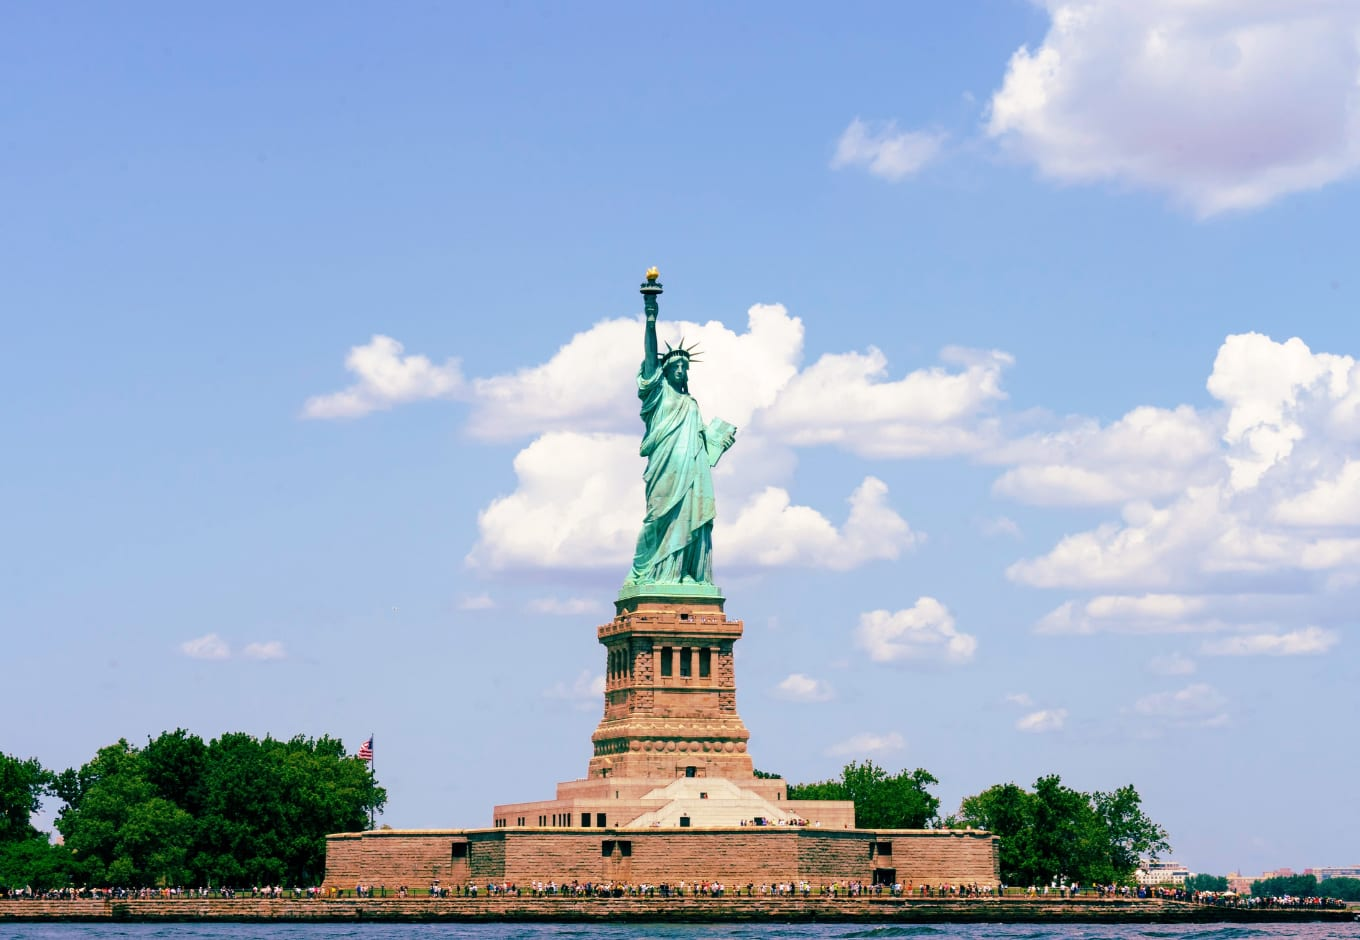 Statue of liberty in NYC this week